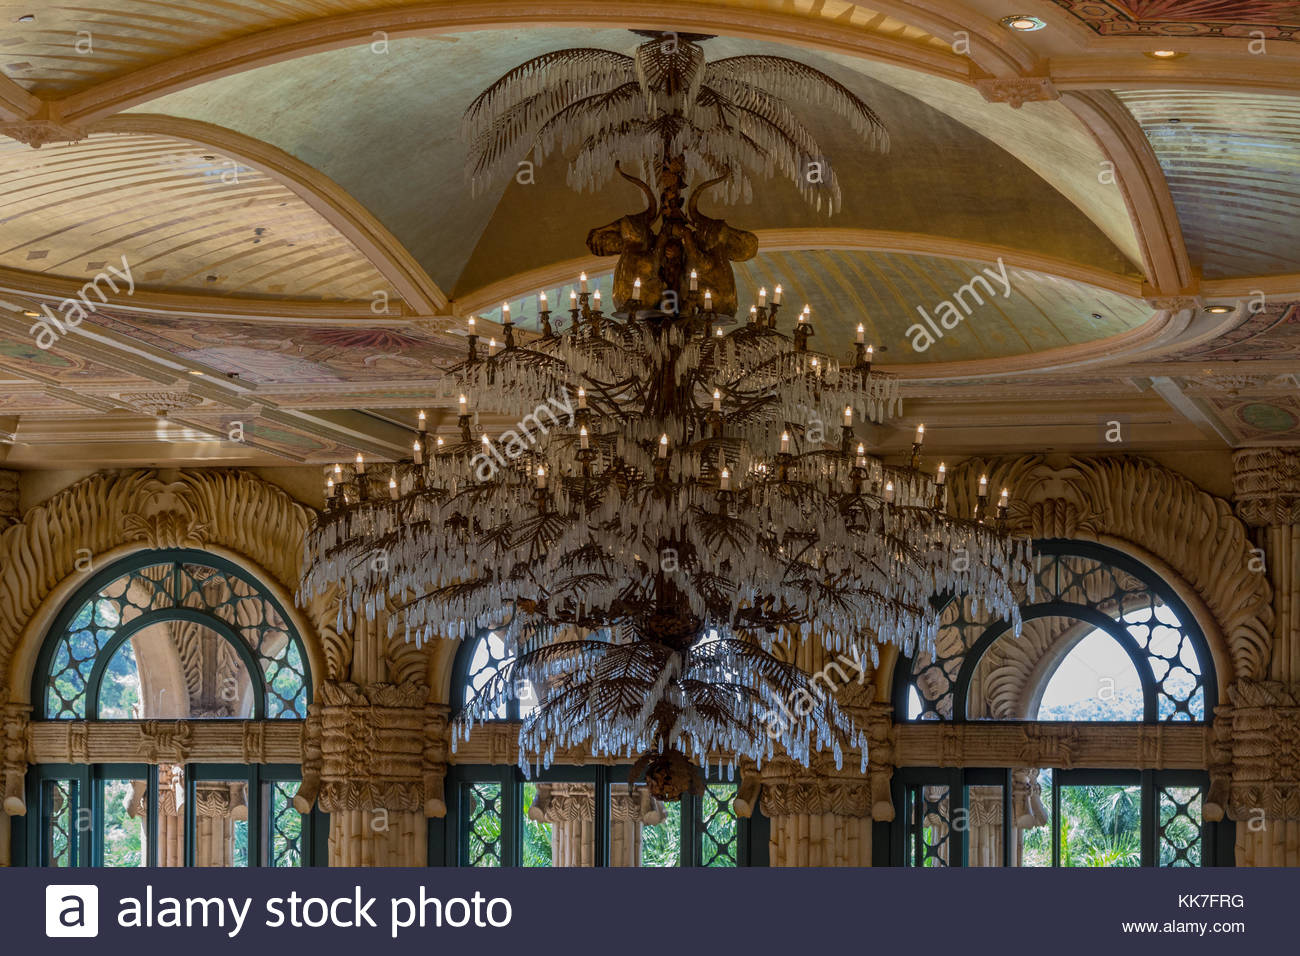 An ornate crystal chandelier in the dining room of the palace hotel an ornate crystal chandelier in the dining room of the palace hotel sun city pilanesburg south africa arubaitofo Image collections